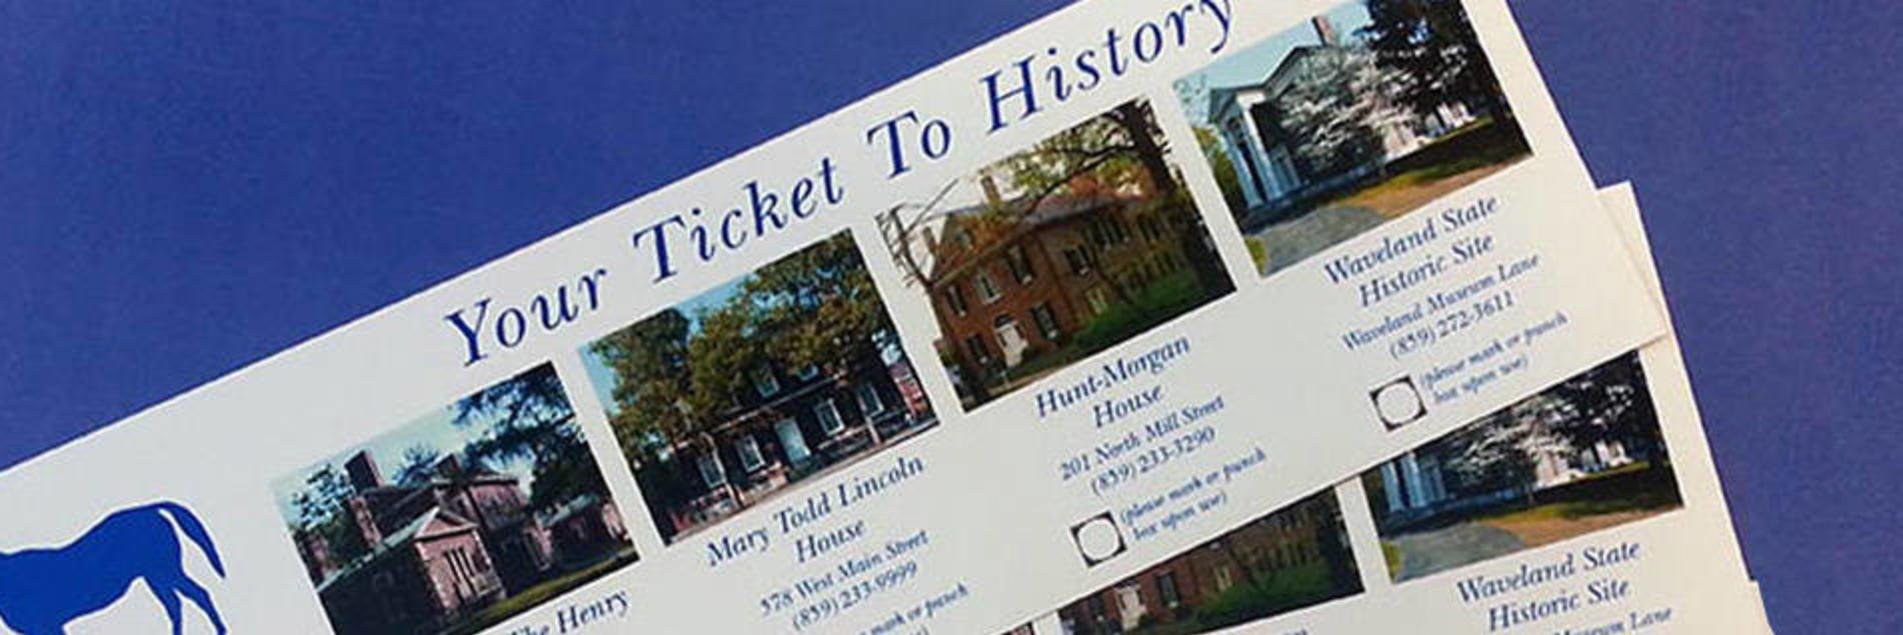 Ticket to History